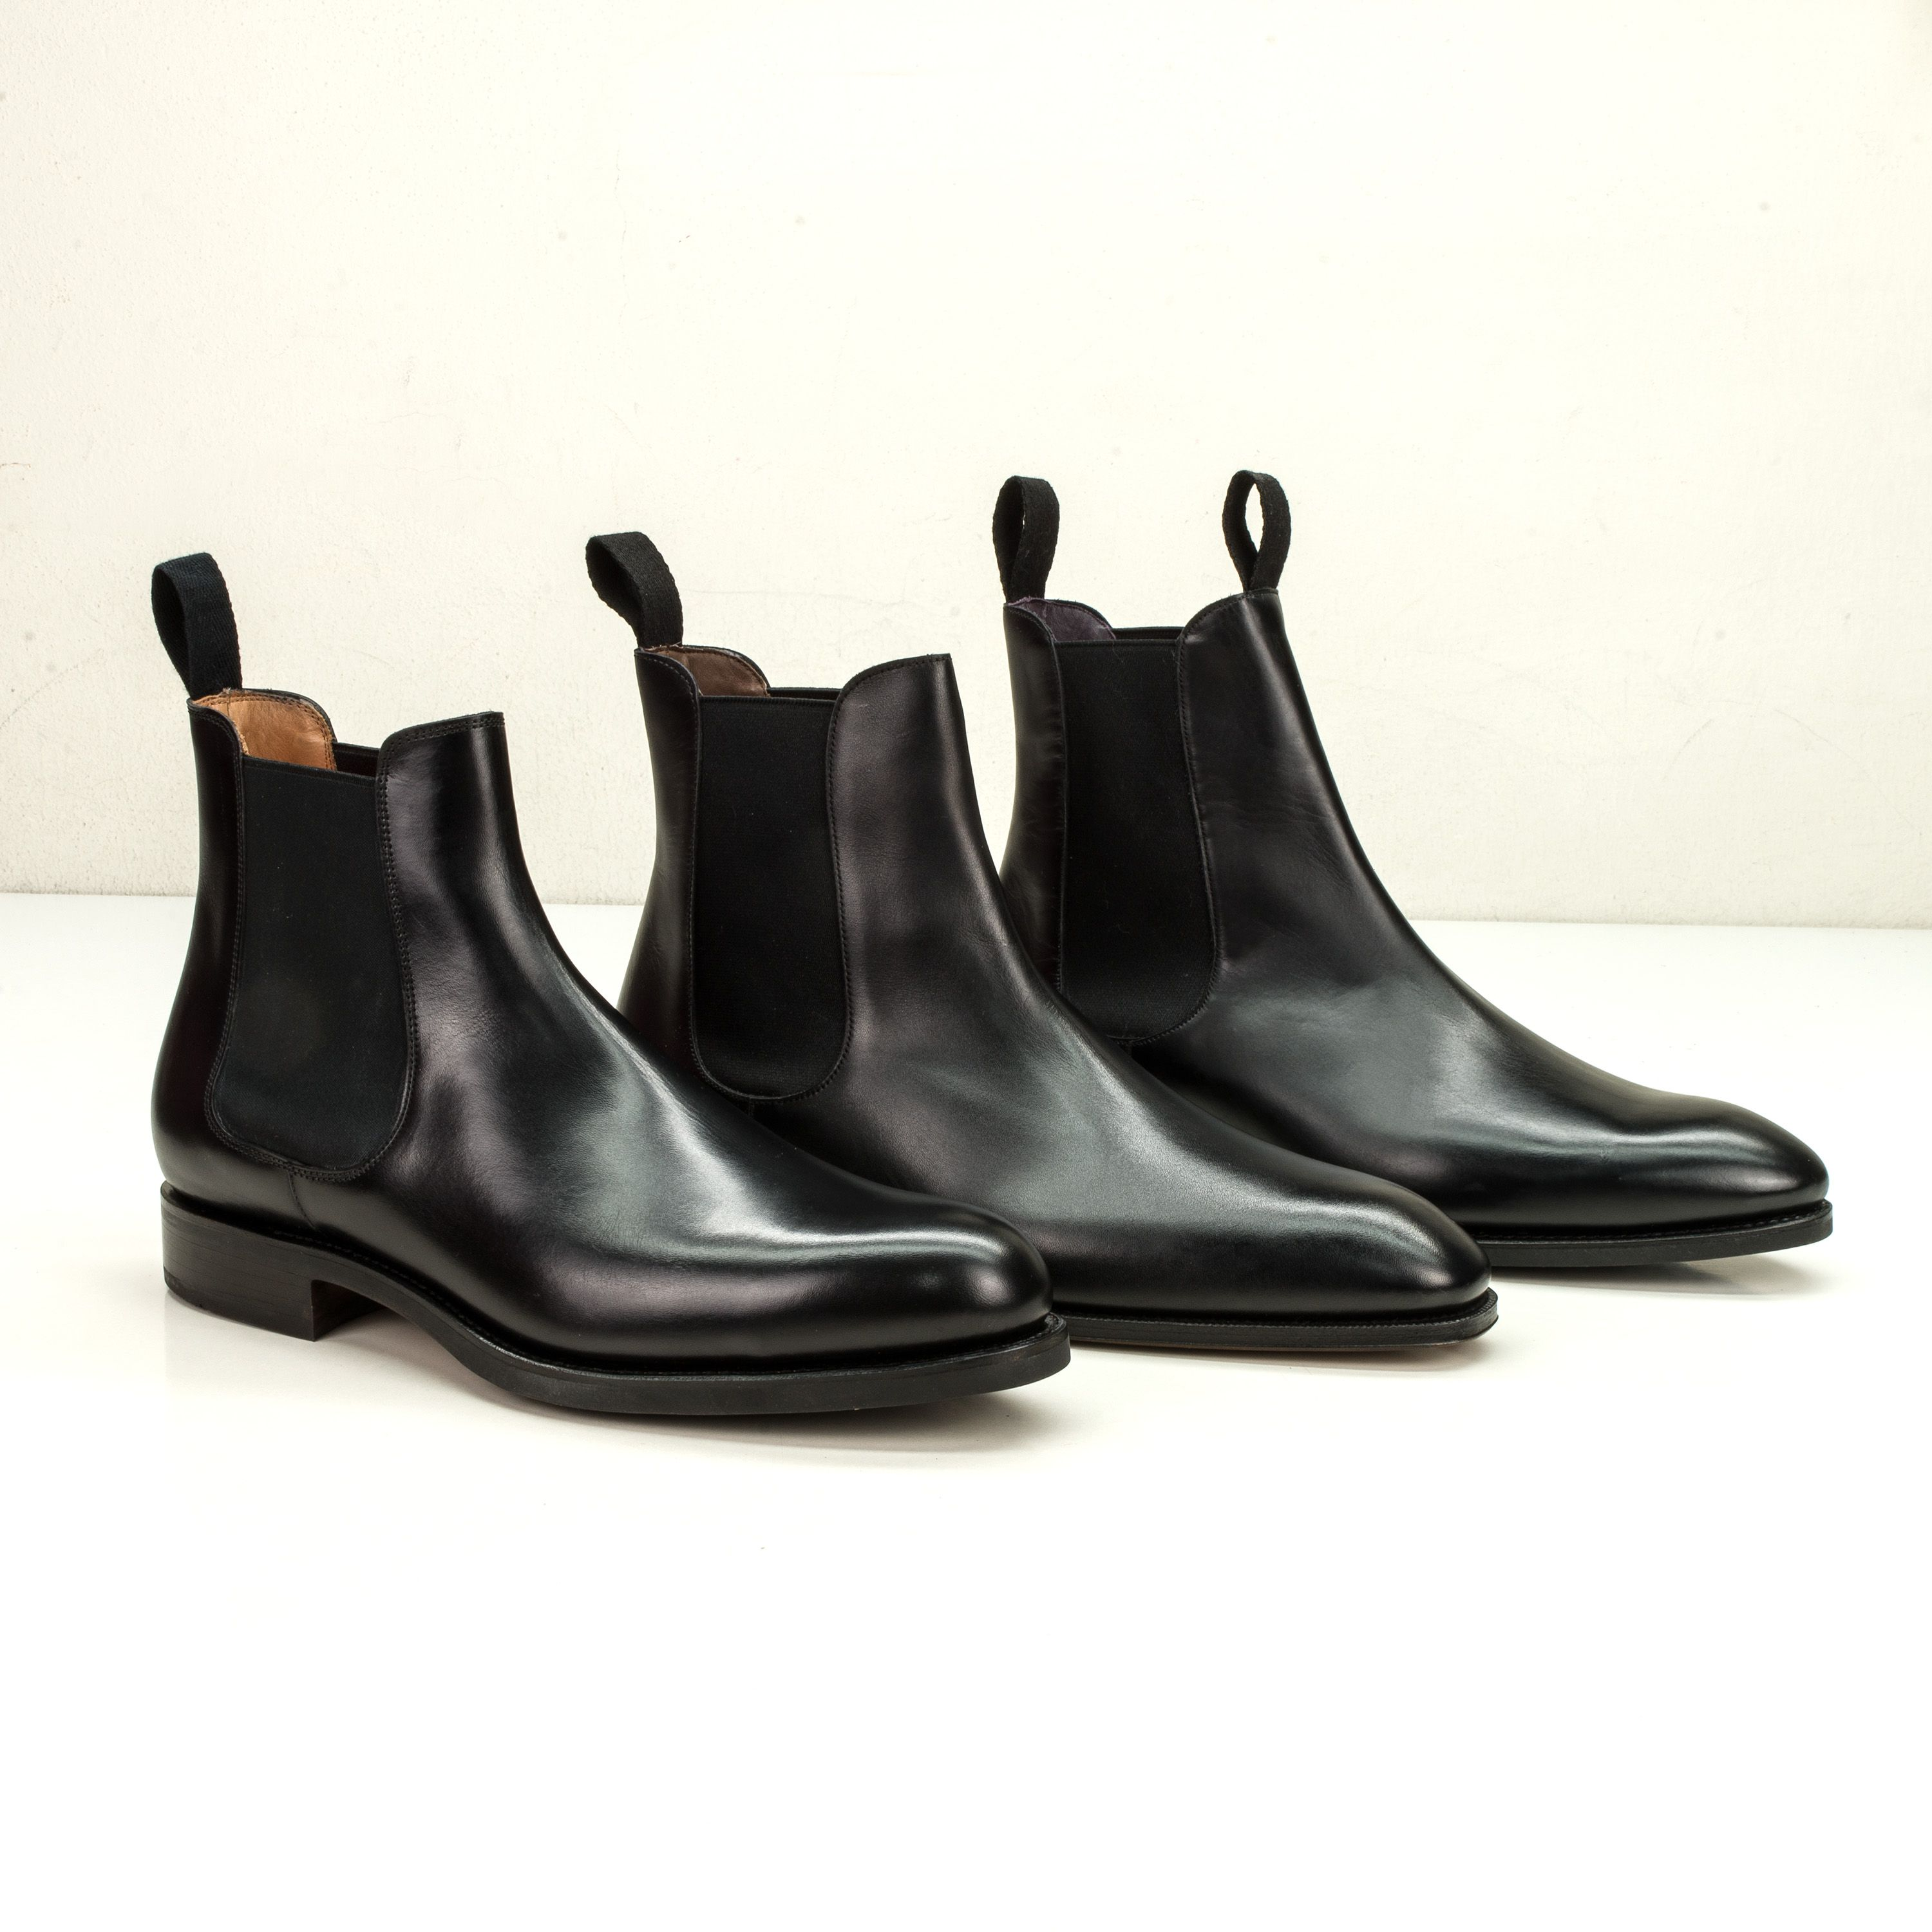 221c65b6517 Black chelsea boots, explore our Collection of Chelsea boots at ...